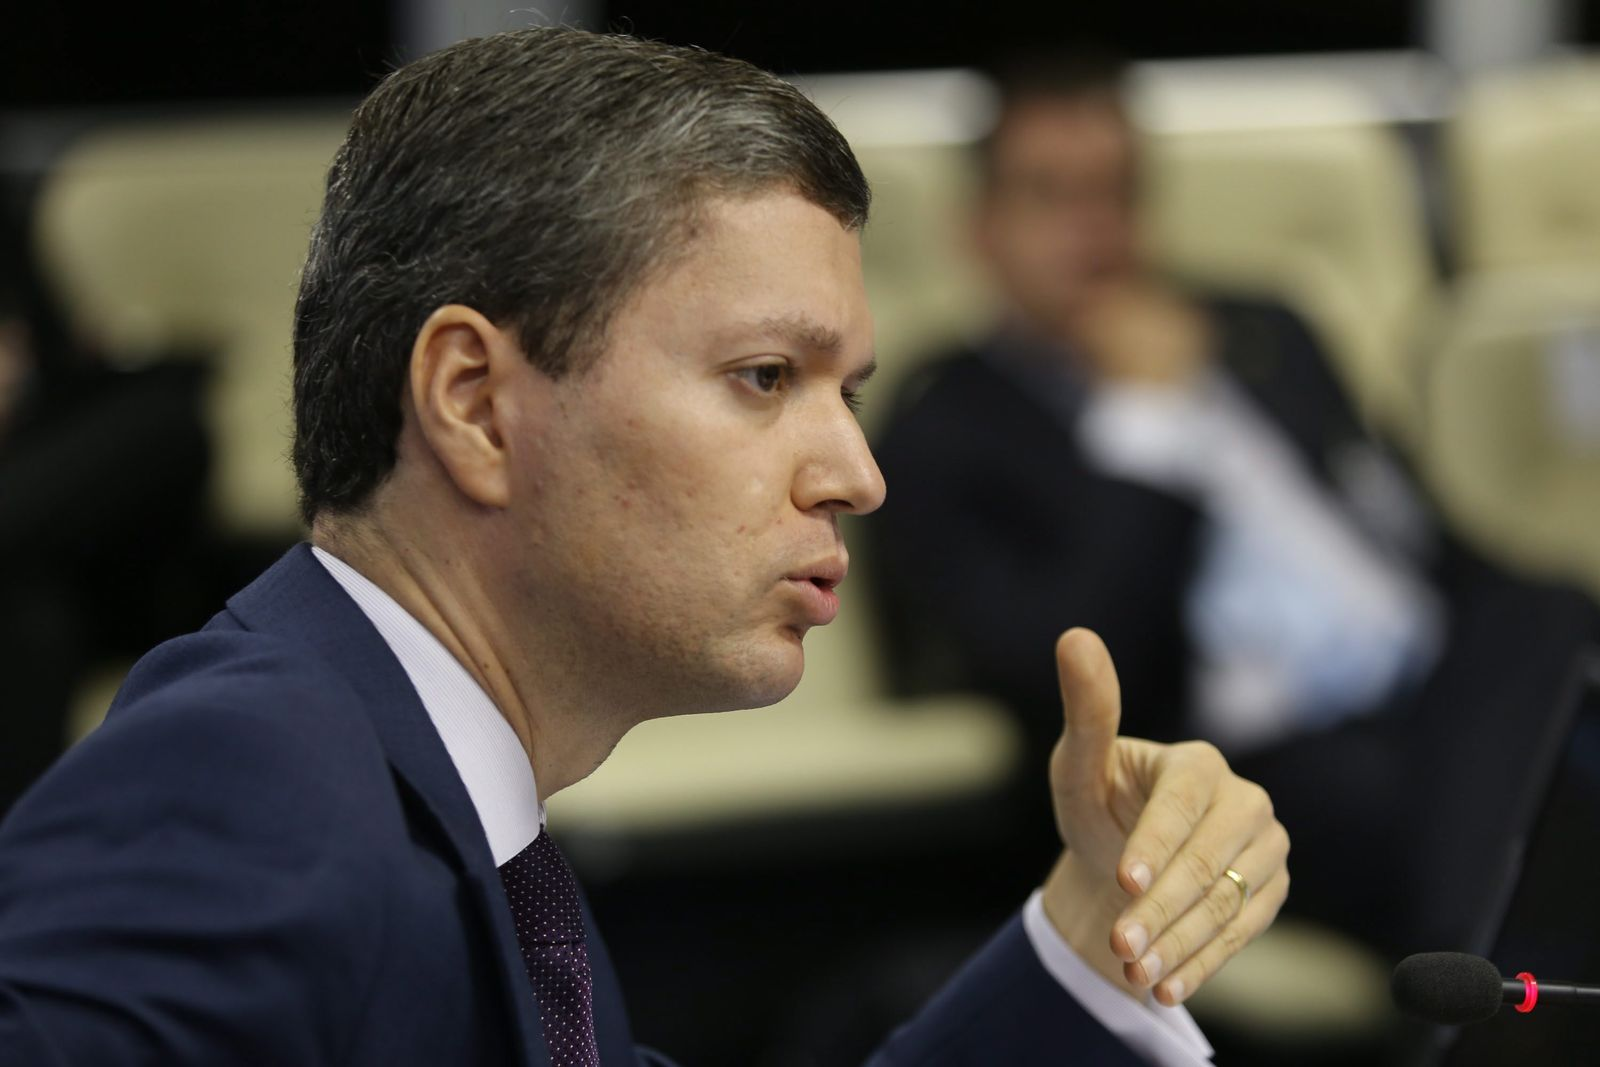 Brazils Minister of Transparency Fabiano Silveira resigns over c